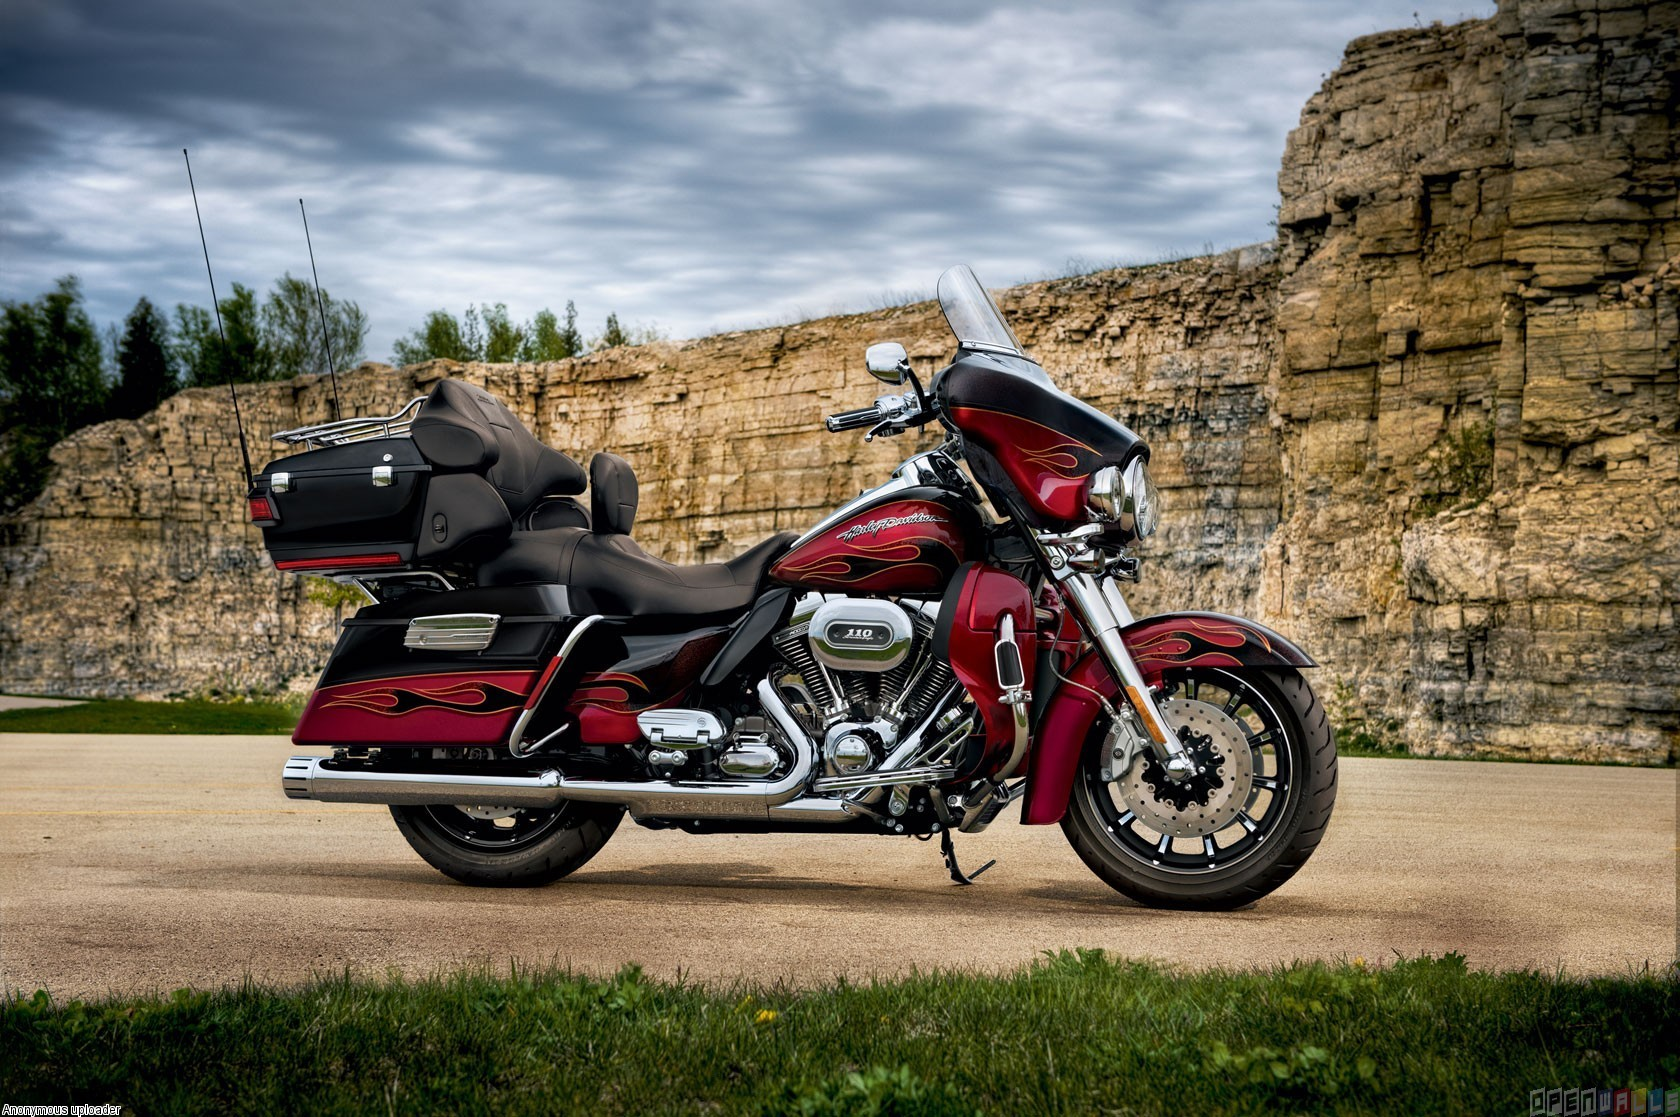 1680x1117 - Harley-Davidson Electra Glide Ultra Classic Wallpapers 1